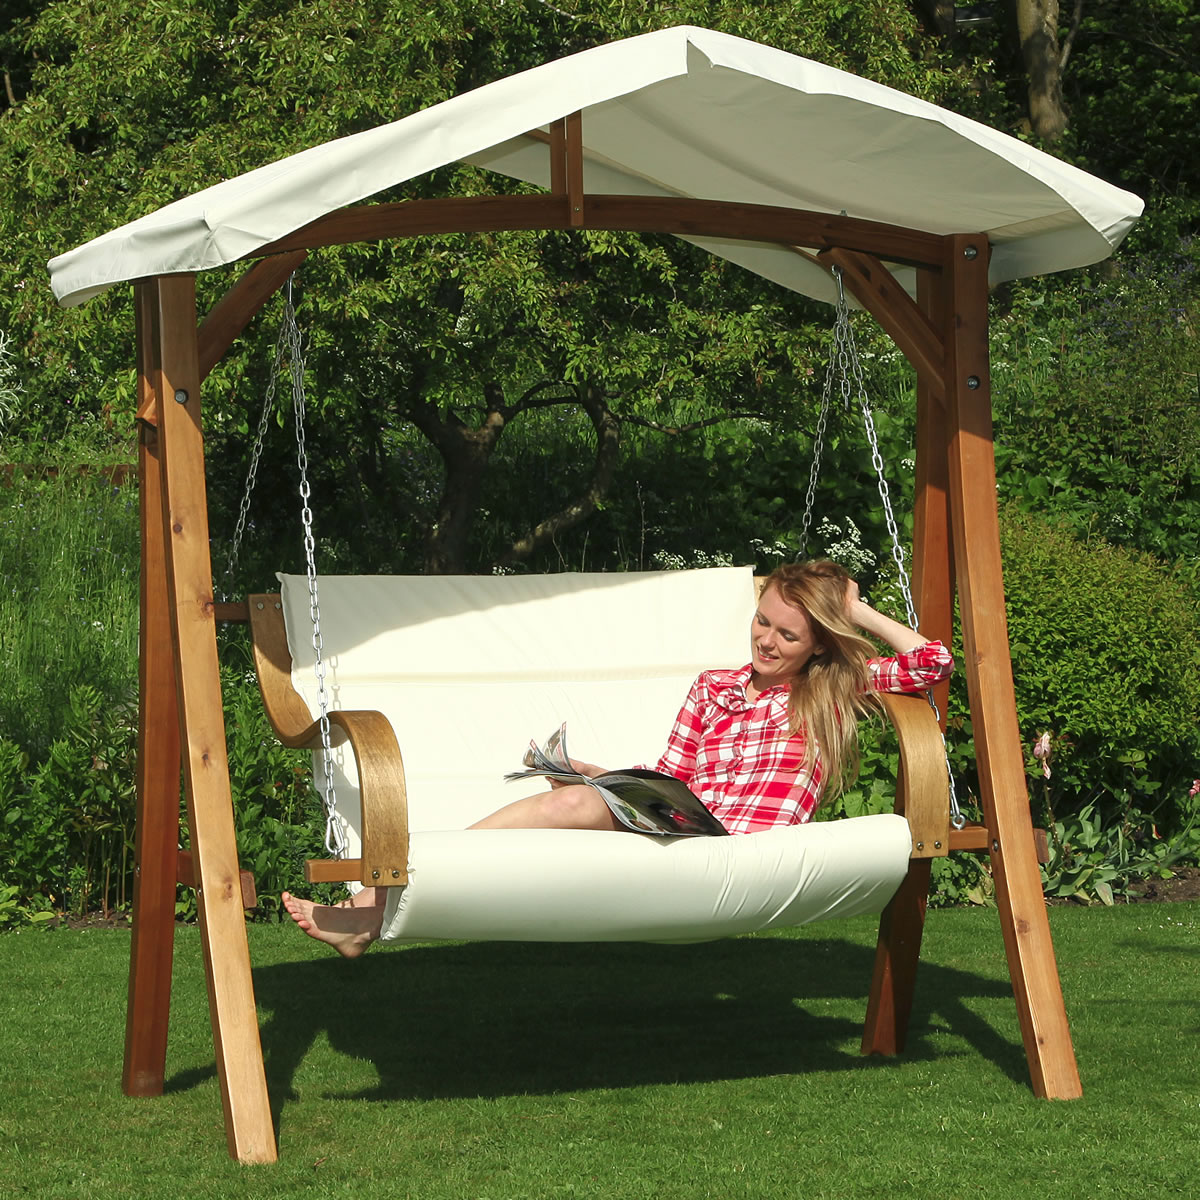 2 Seater Garden Swing Chairs Modern Patio Outdoor